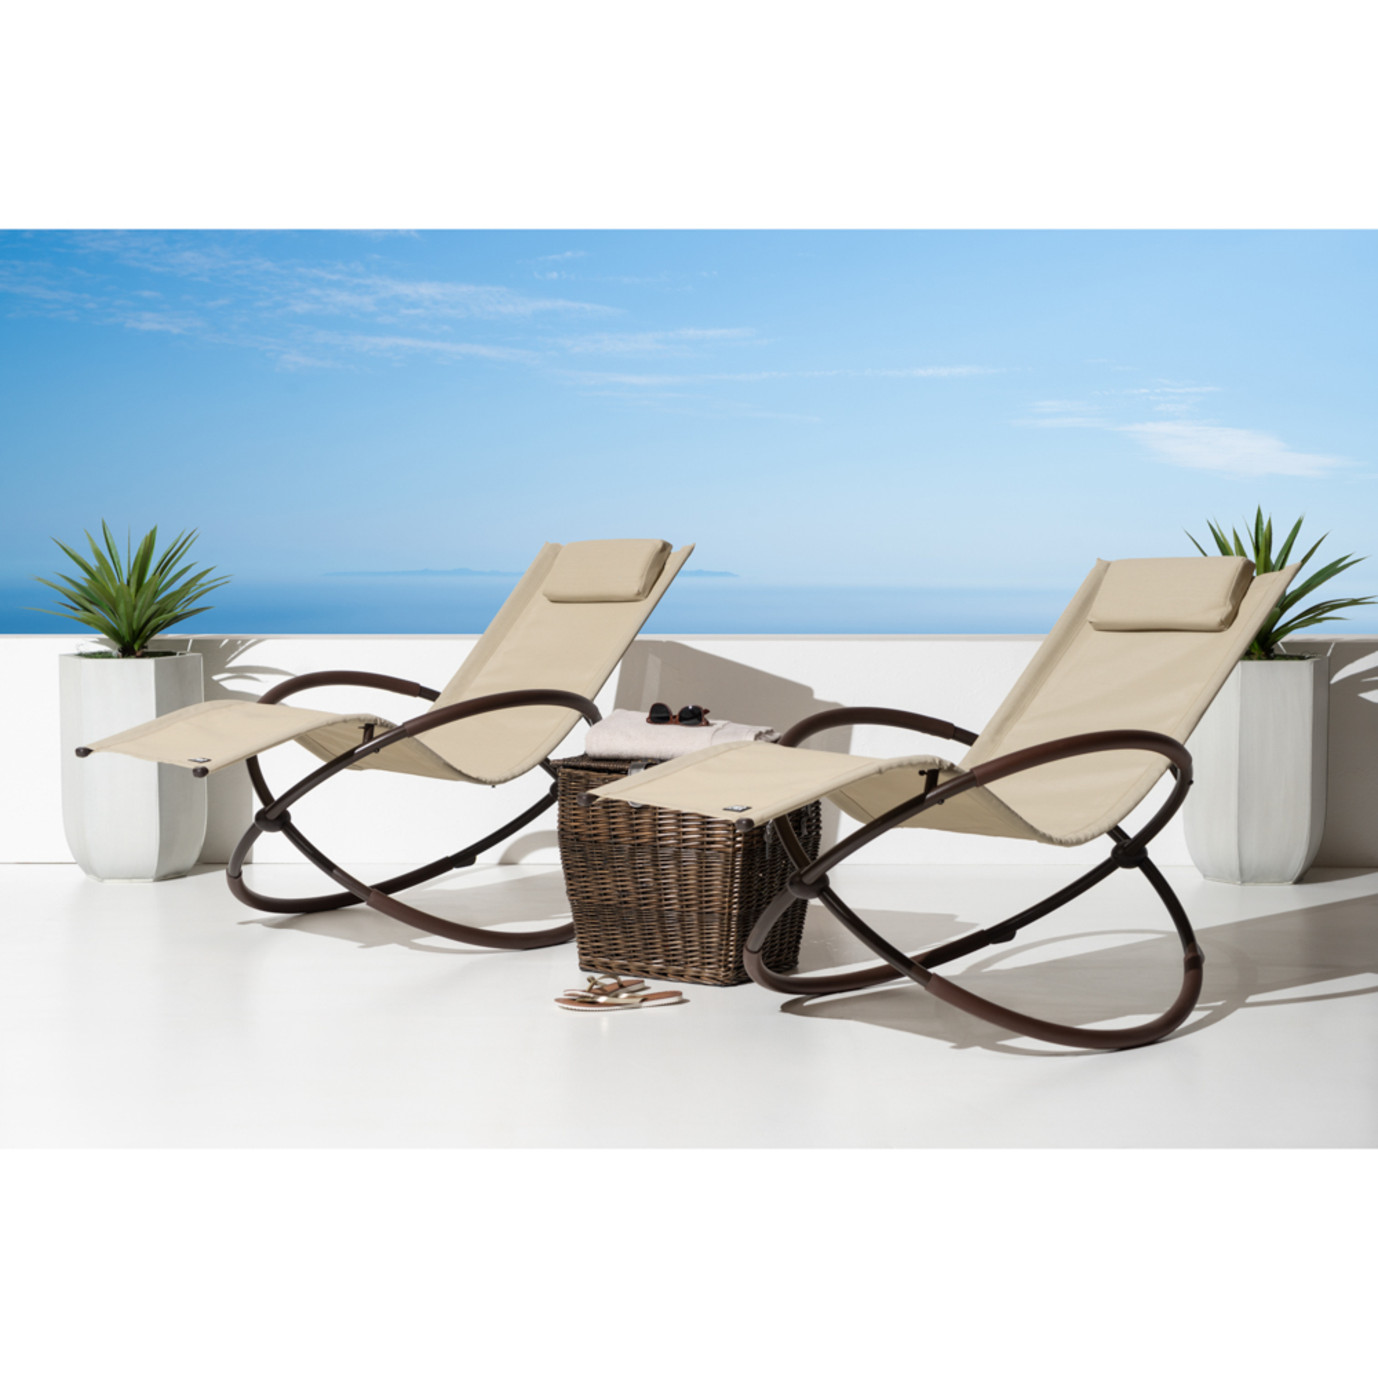 Original Orbital Outdoor Loungers 2pk - Beige